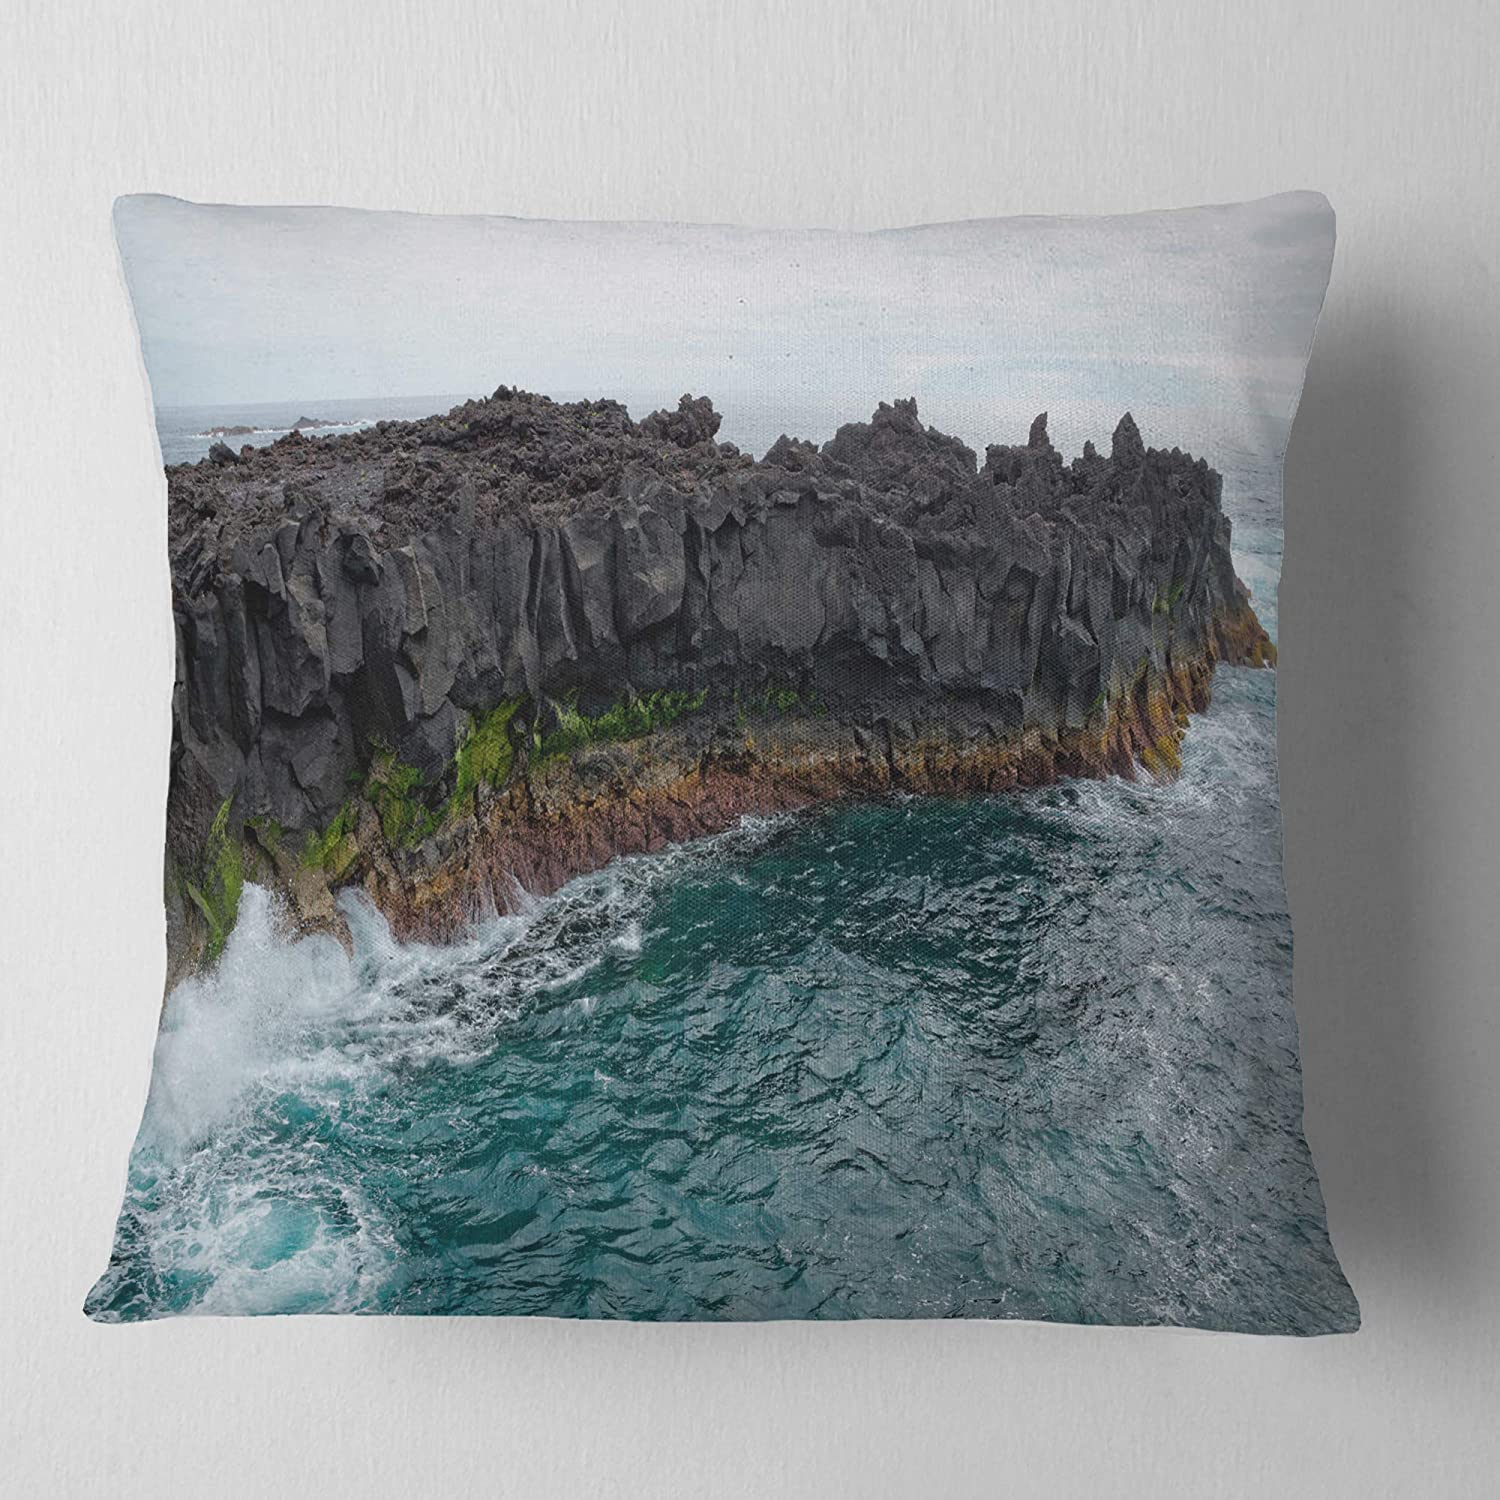 x 18 in Insert Printed On Both Side Designart CU11162-18-18 Rocky Coast with Moss in Azores Seashore Cushion Cover for Living Room Sofa Throw Pillow 18 in in